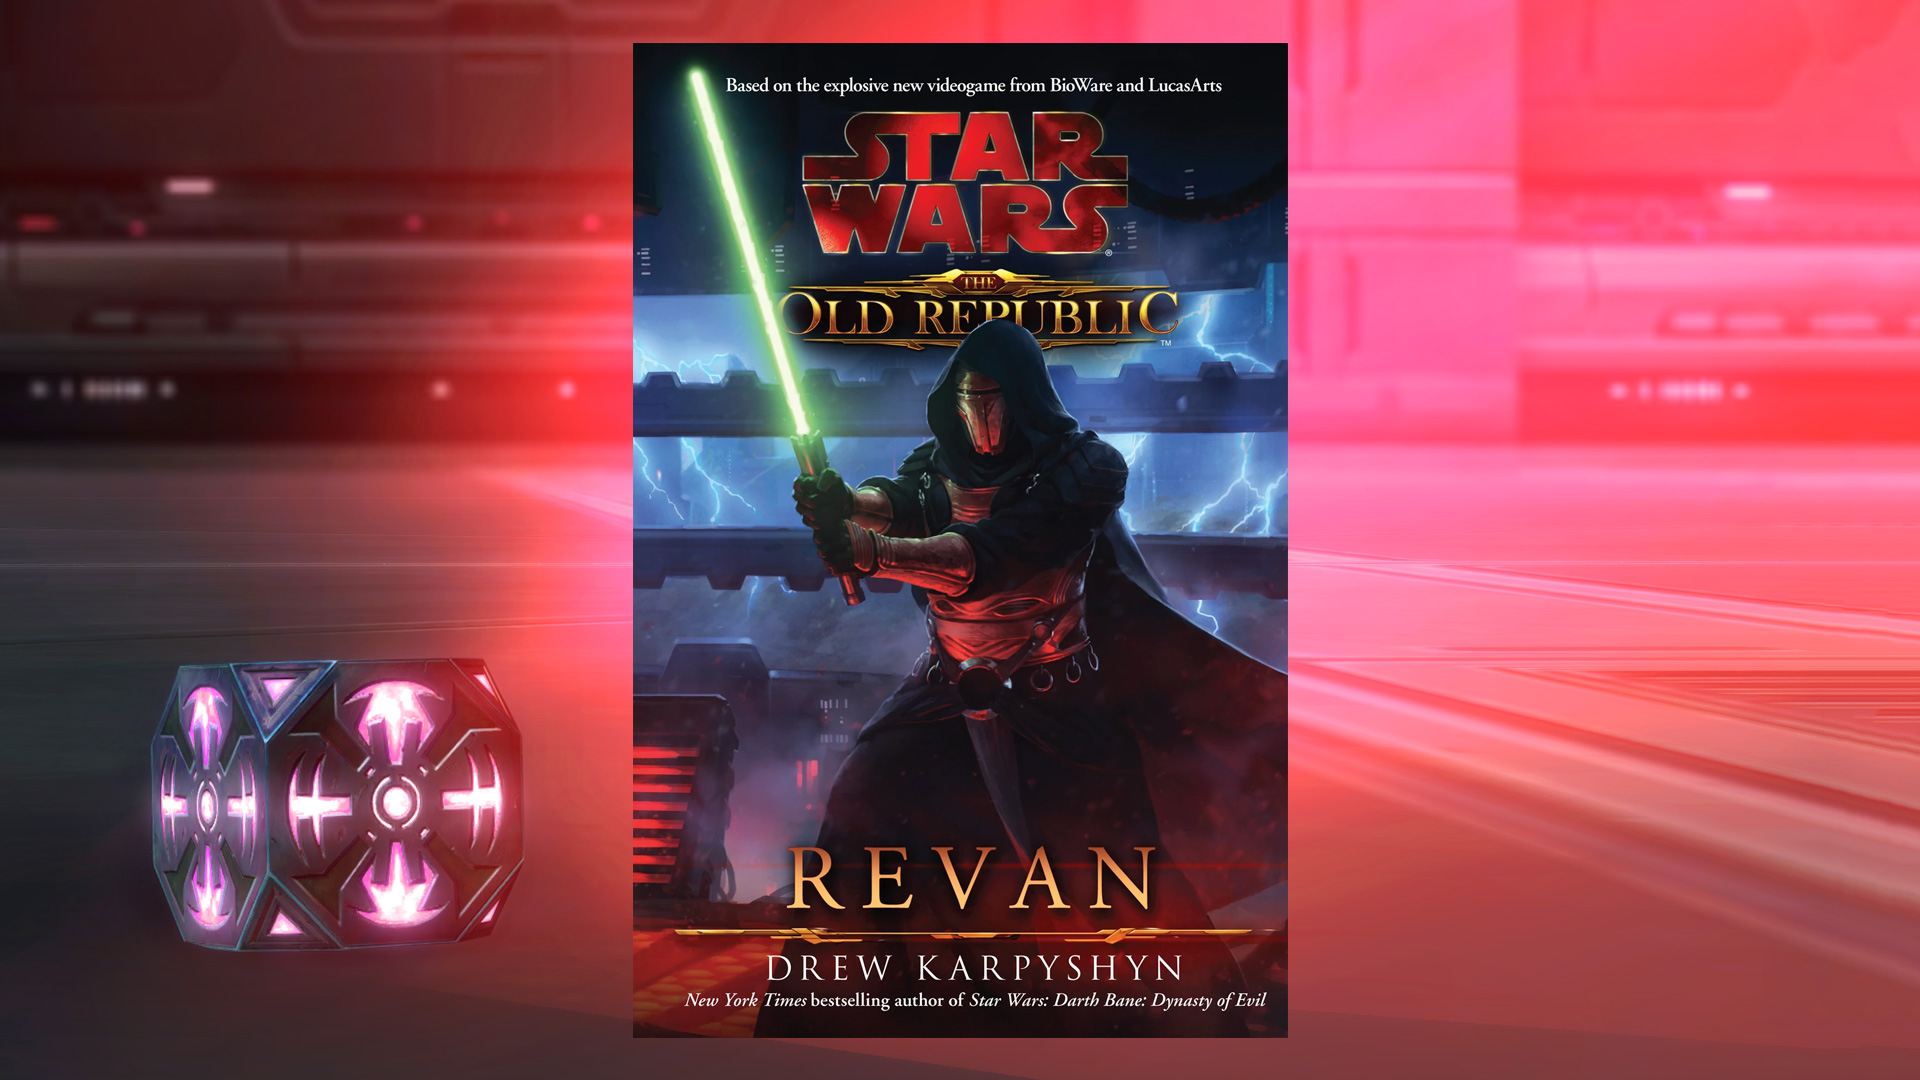 Swtorista On Twitter 1 Revan A Book About Revan After The Kotor Games